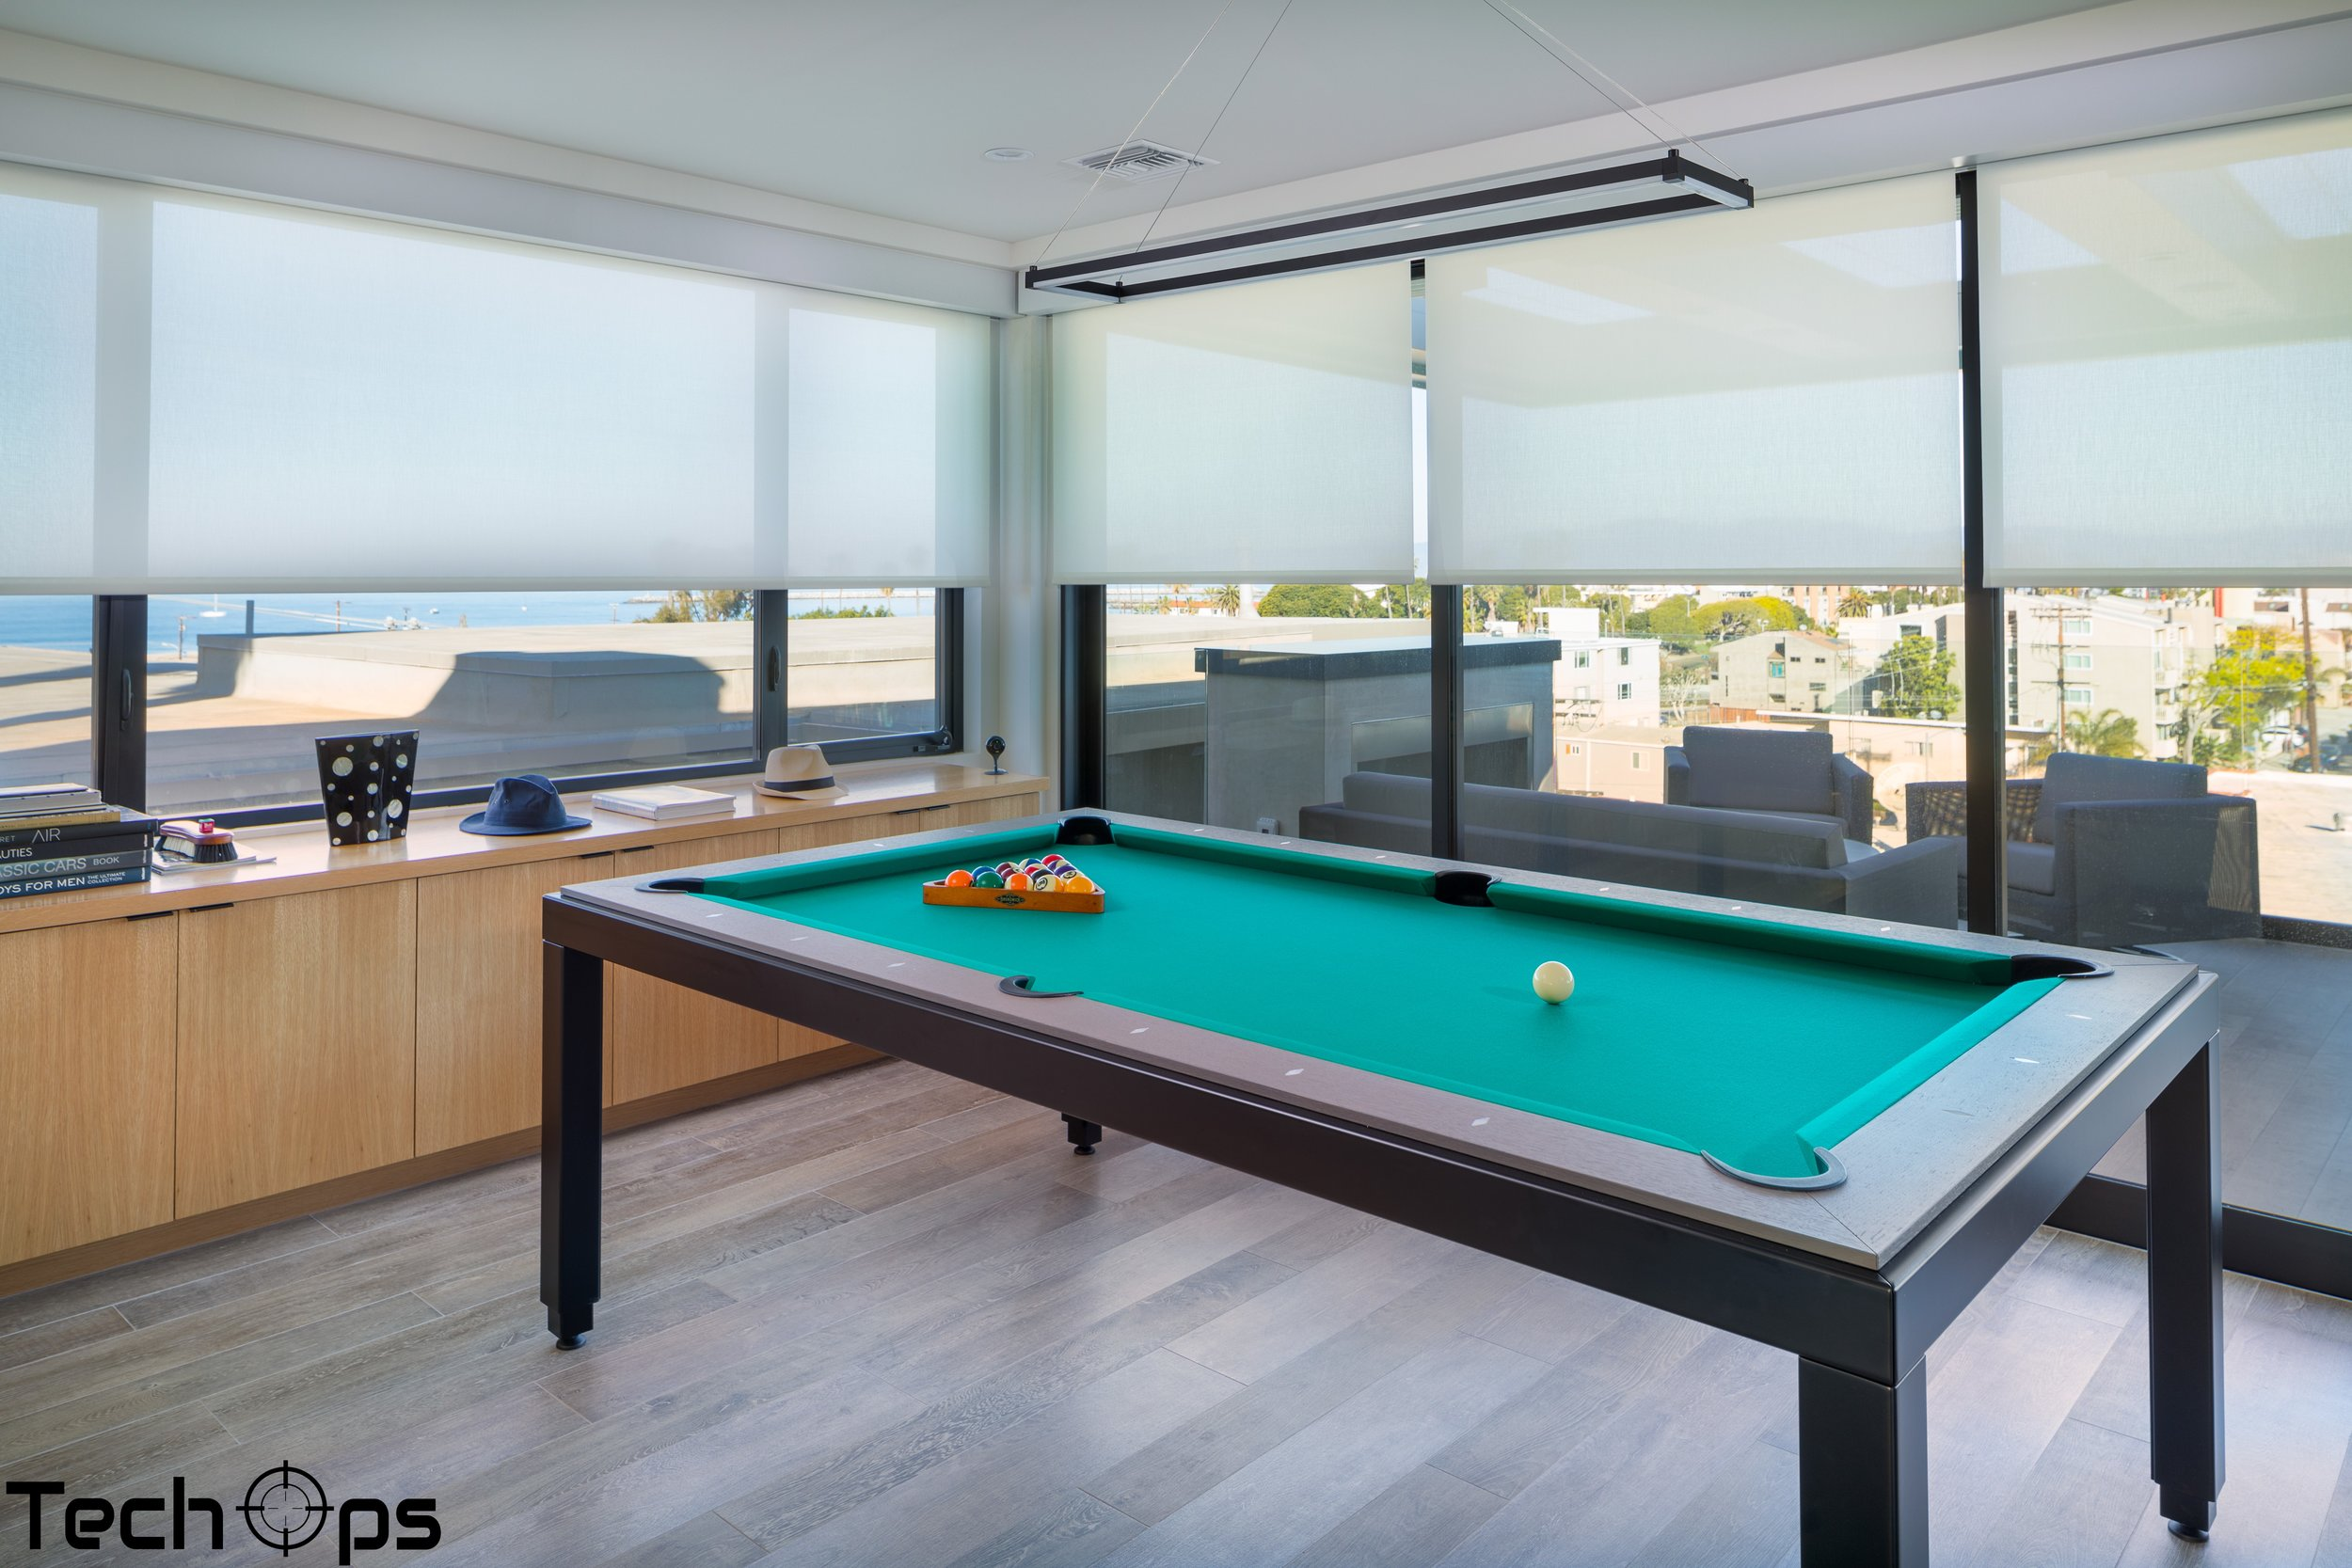 Pool Table With Shades.jpg